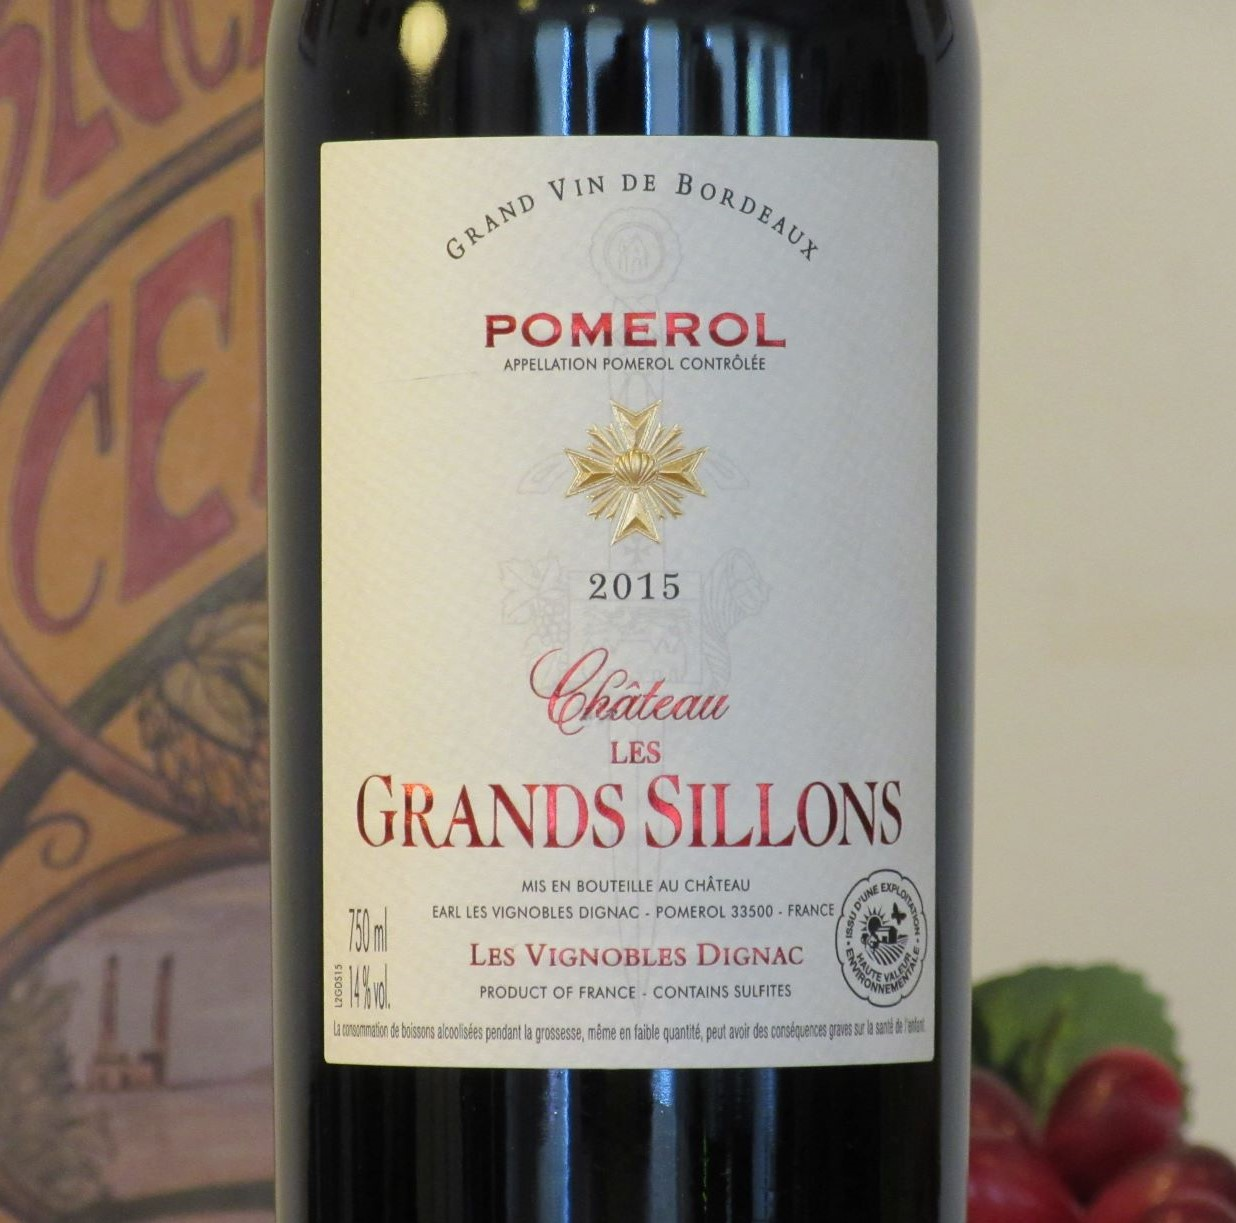 Chateau Les Grands Sillons Pomerol 2015